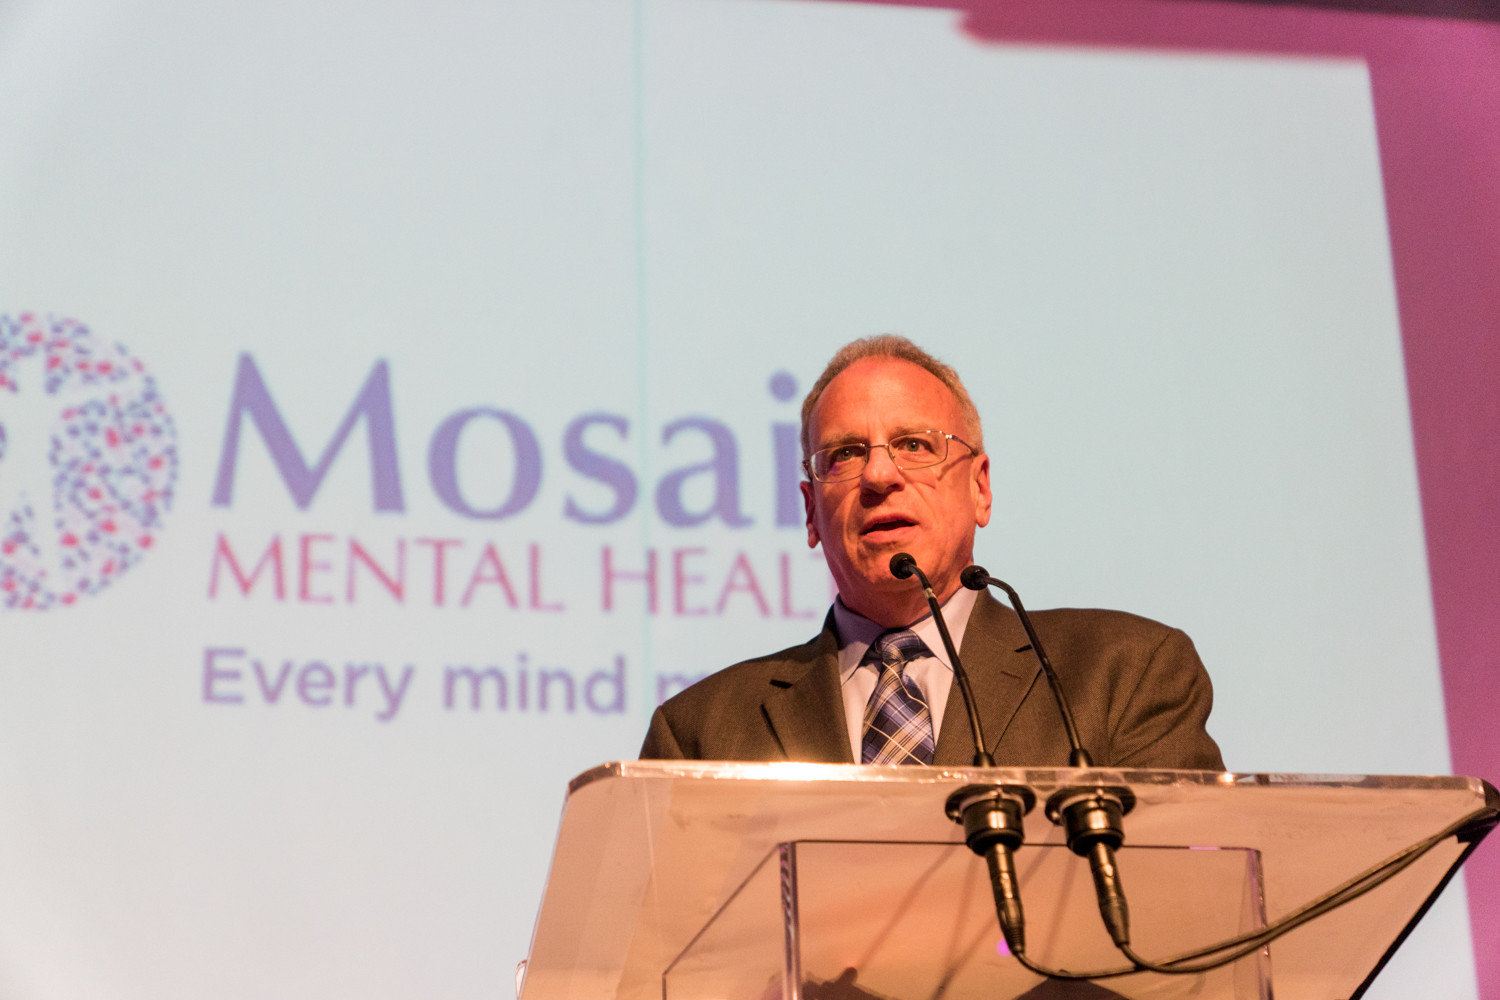 Assemblyman Jeffrey Dinowitz speaks about the importance of mental health at a gala celebrating Mosaic Mental Health's rebranding. The new name reflects its wide range of service and communities beyond Riverdale.